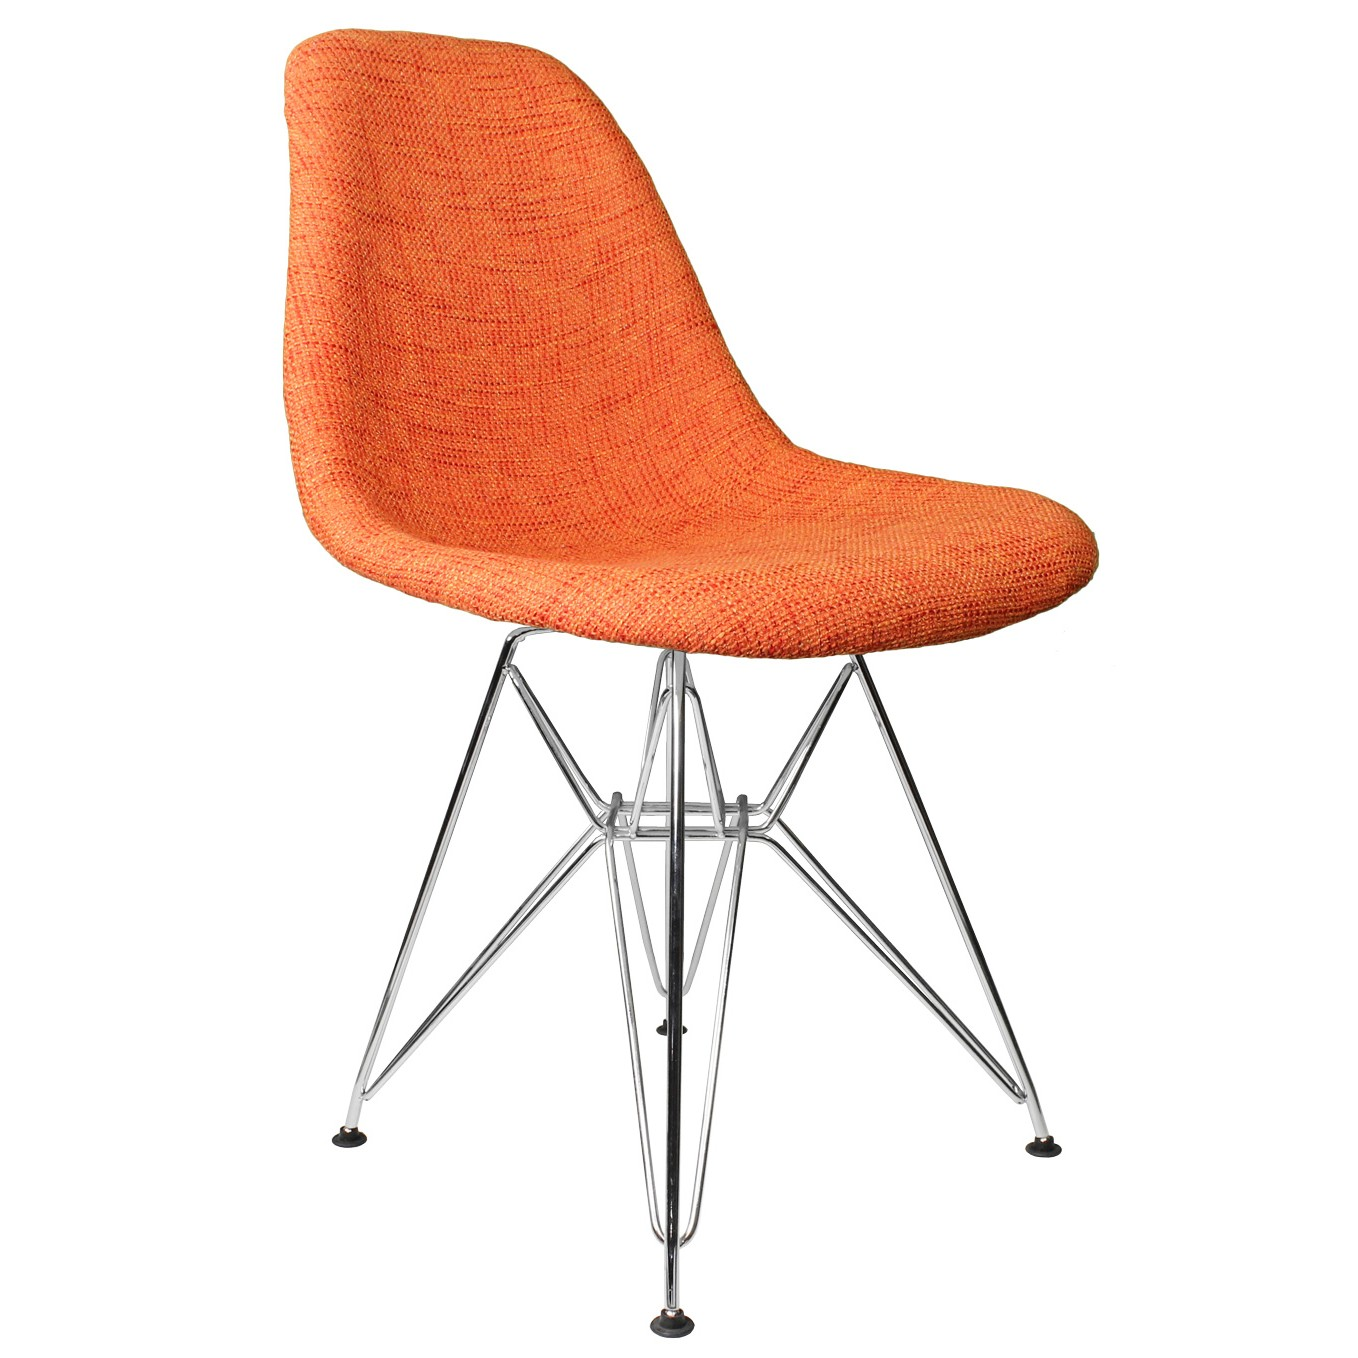 mid century modern accent chair orange clearance outdoor cushions fabric upholstered eames style